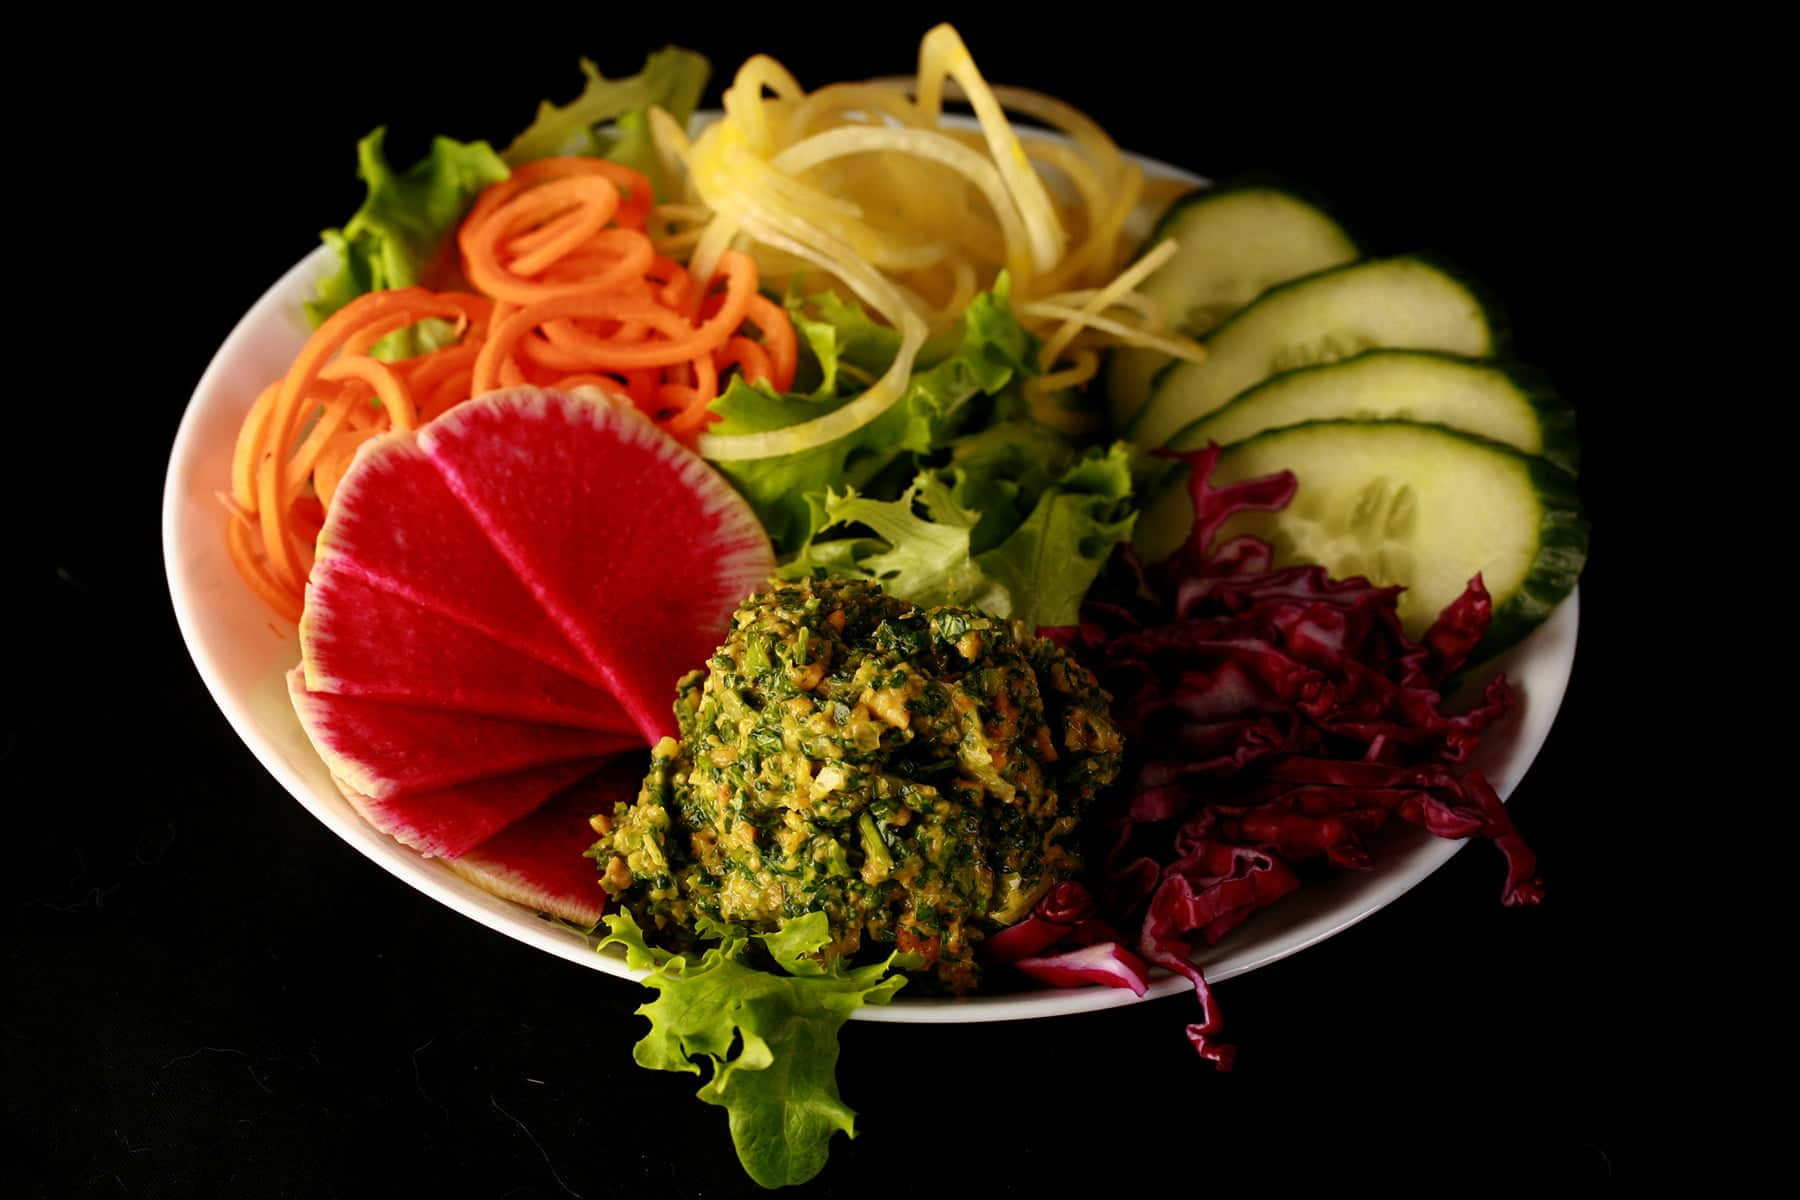 A large scoop of cilantro pesto is shown against the backdrop of a gloriously colourful salad - greens, watermelon radish, spiralized carrots and yellow beets, cucumber, and purple cabbage!